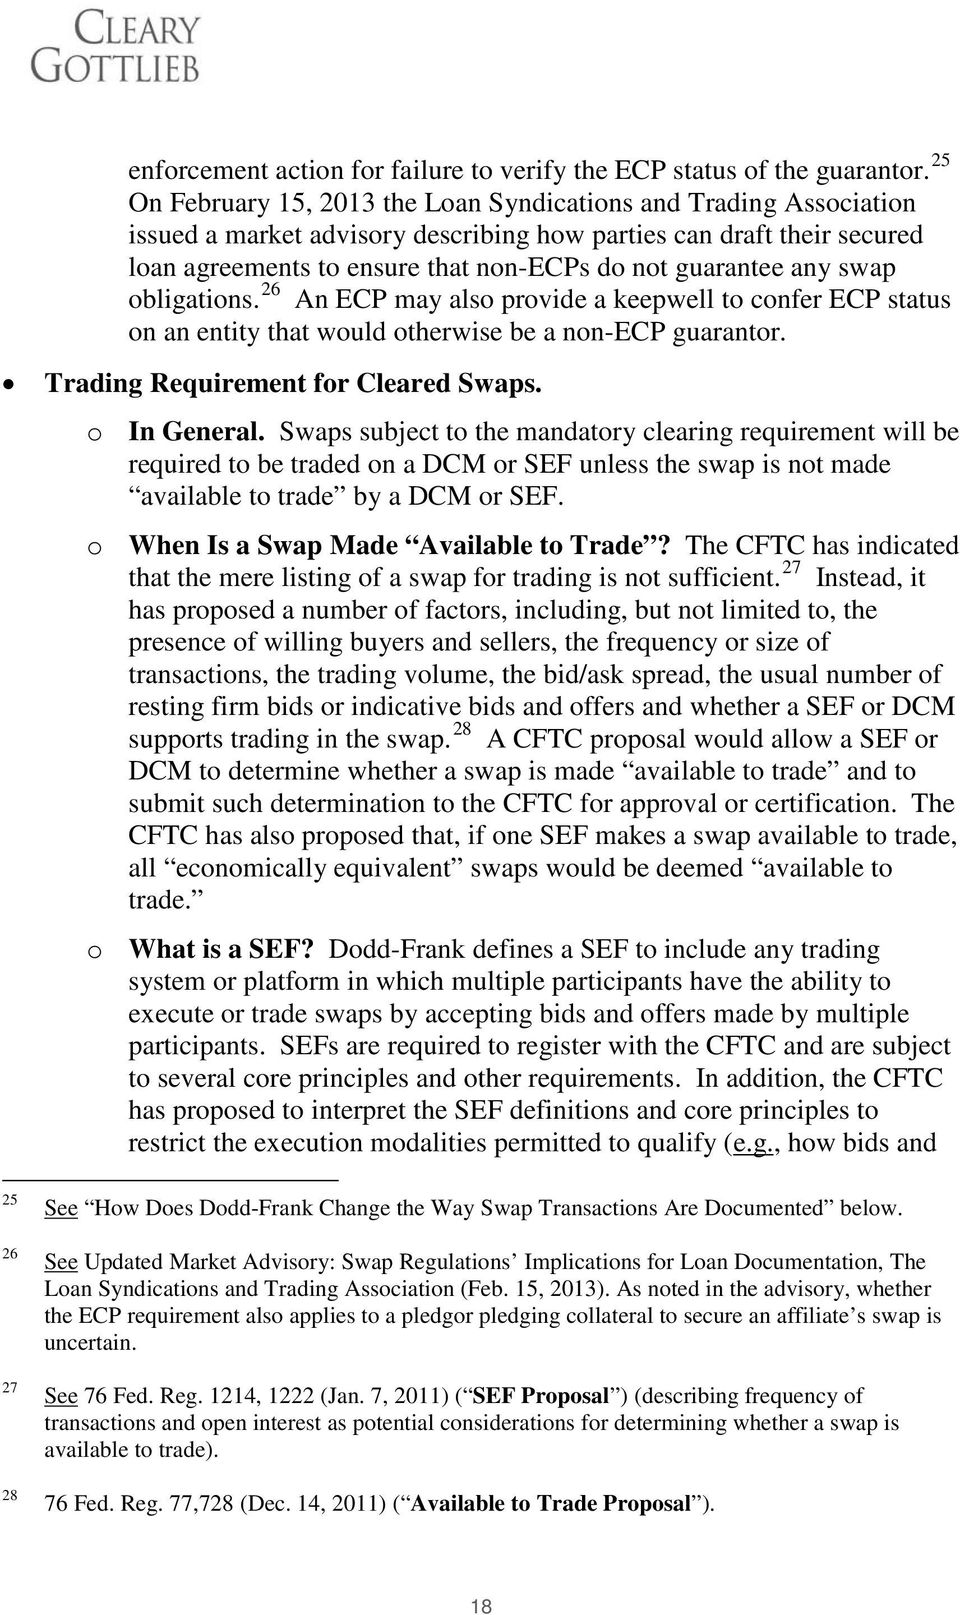 any swap obligations. 26 An ECP may also provide a keepwell to confer ECP status on an entity that would otherwise be a non-ecp guarantor. Trading Requirement for Cleared Swaps. o In General.